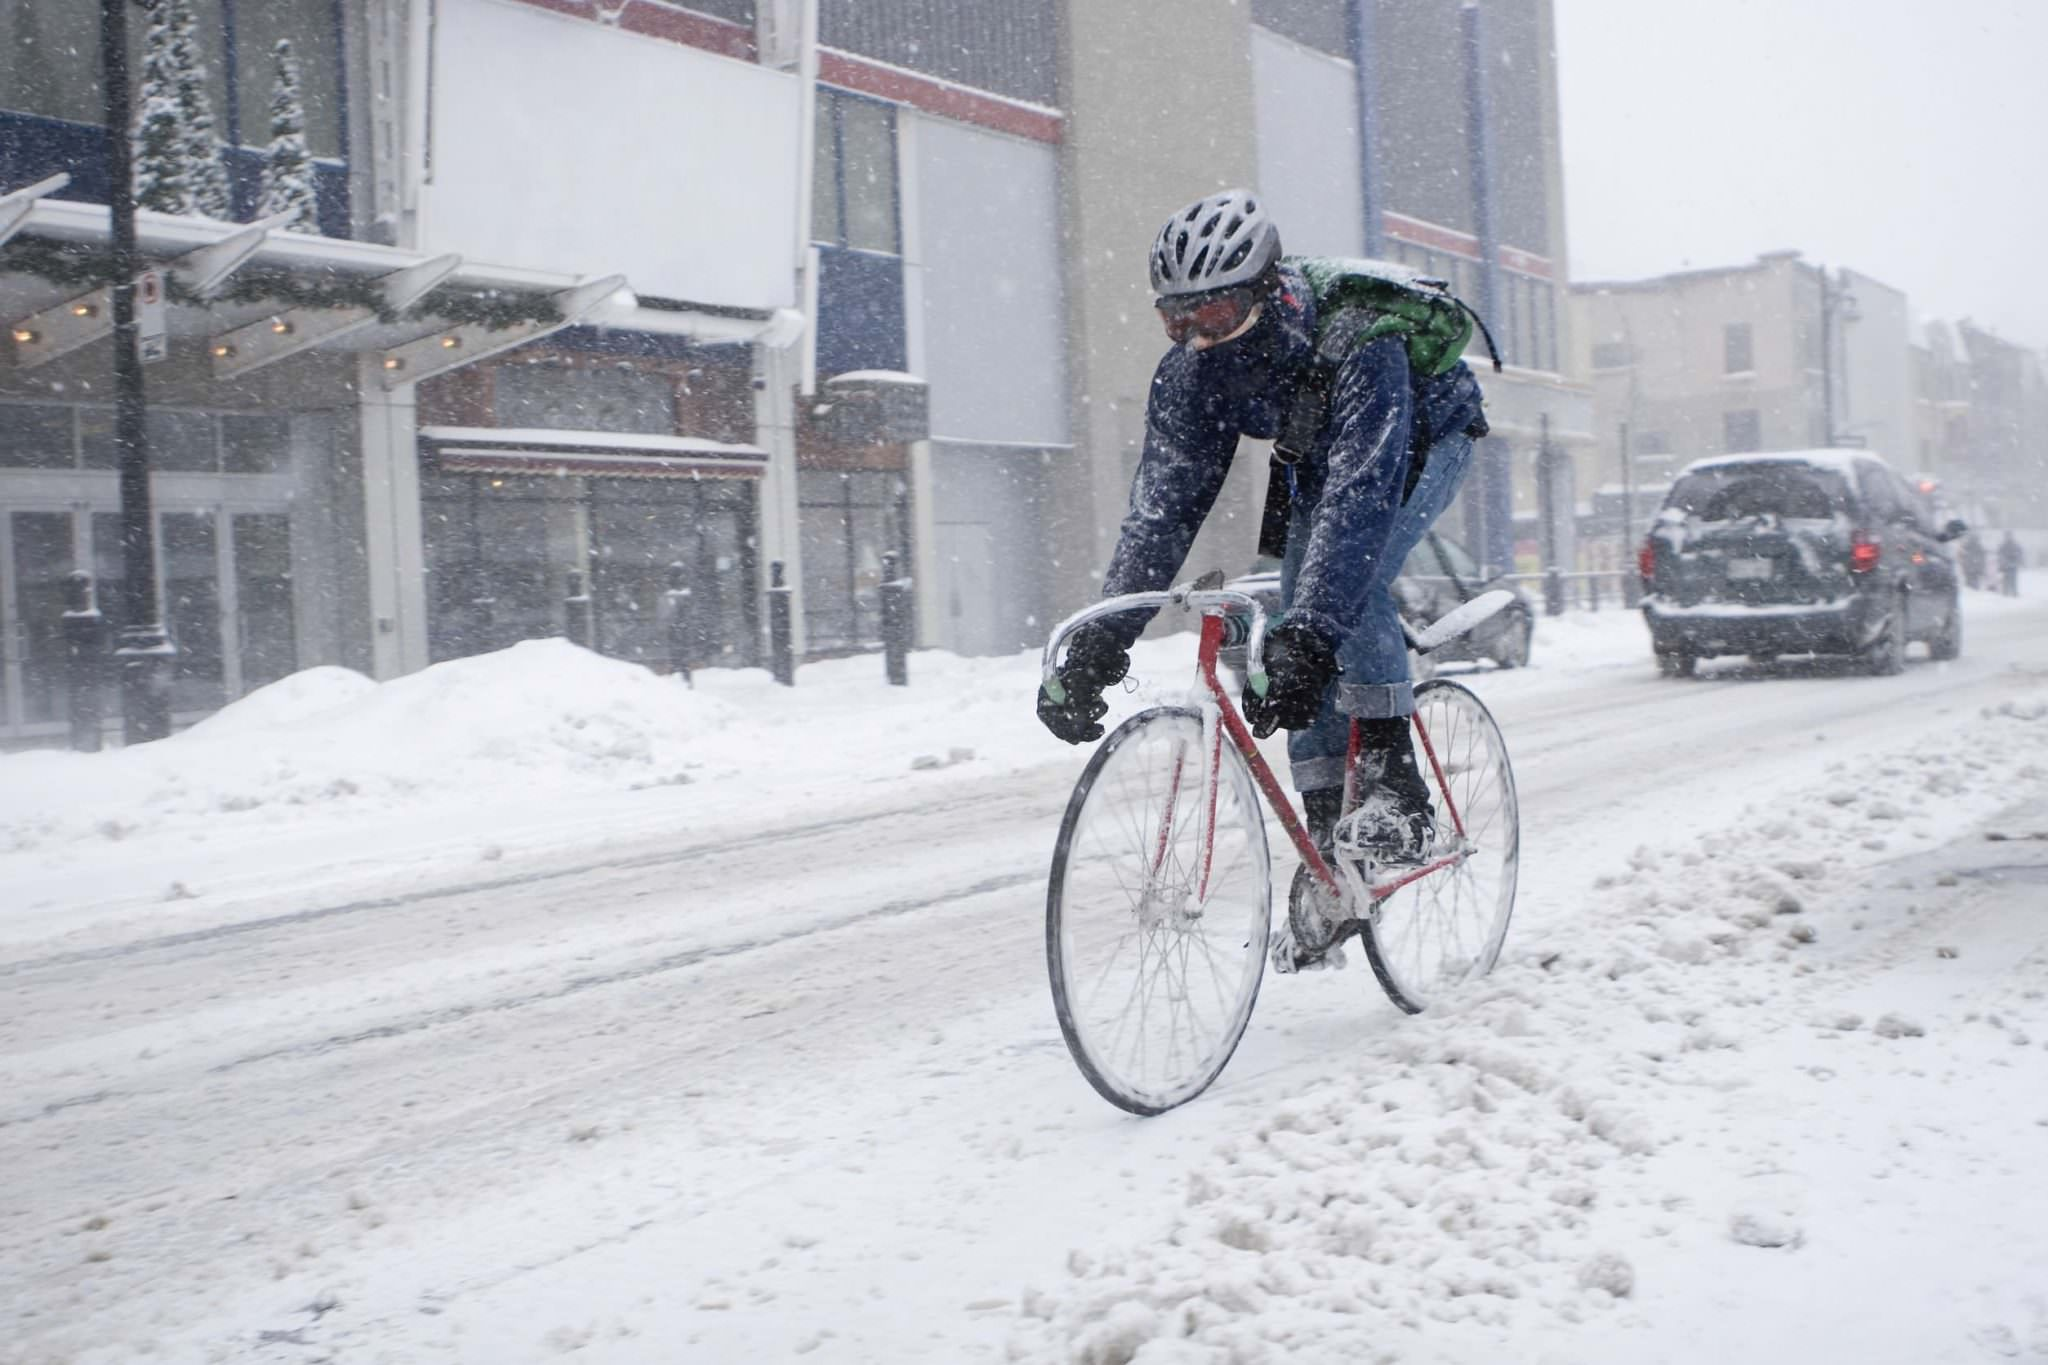 Winter cycling in a blizzard